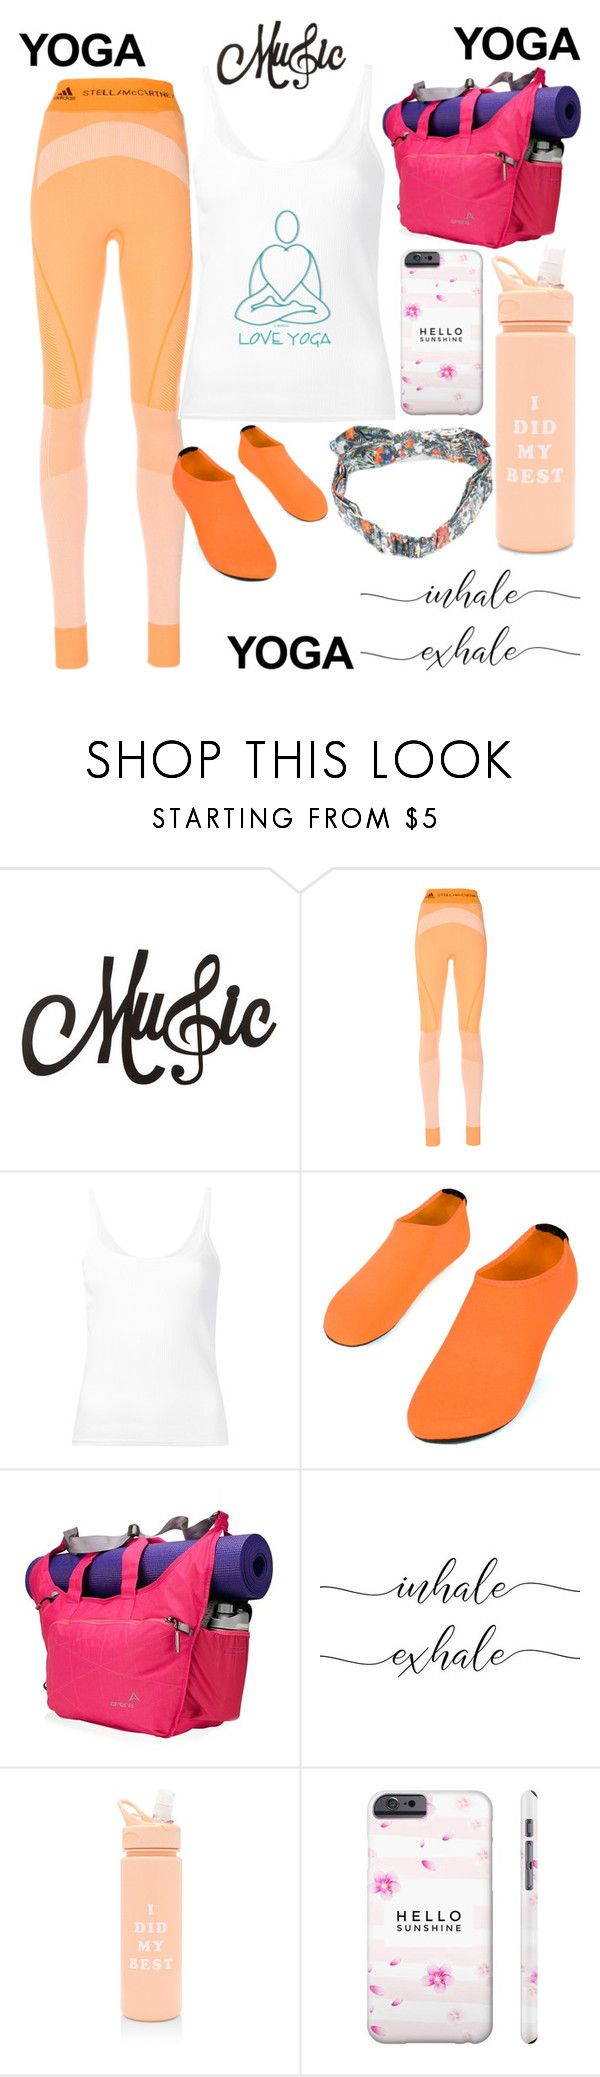 """Orange you glad I do Yoga"" by jayme-becker ❤ liked on Polyvore featuring adidas, CITYSHOP, Apera, ban.do and Maison Michel"